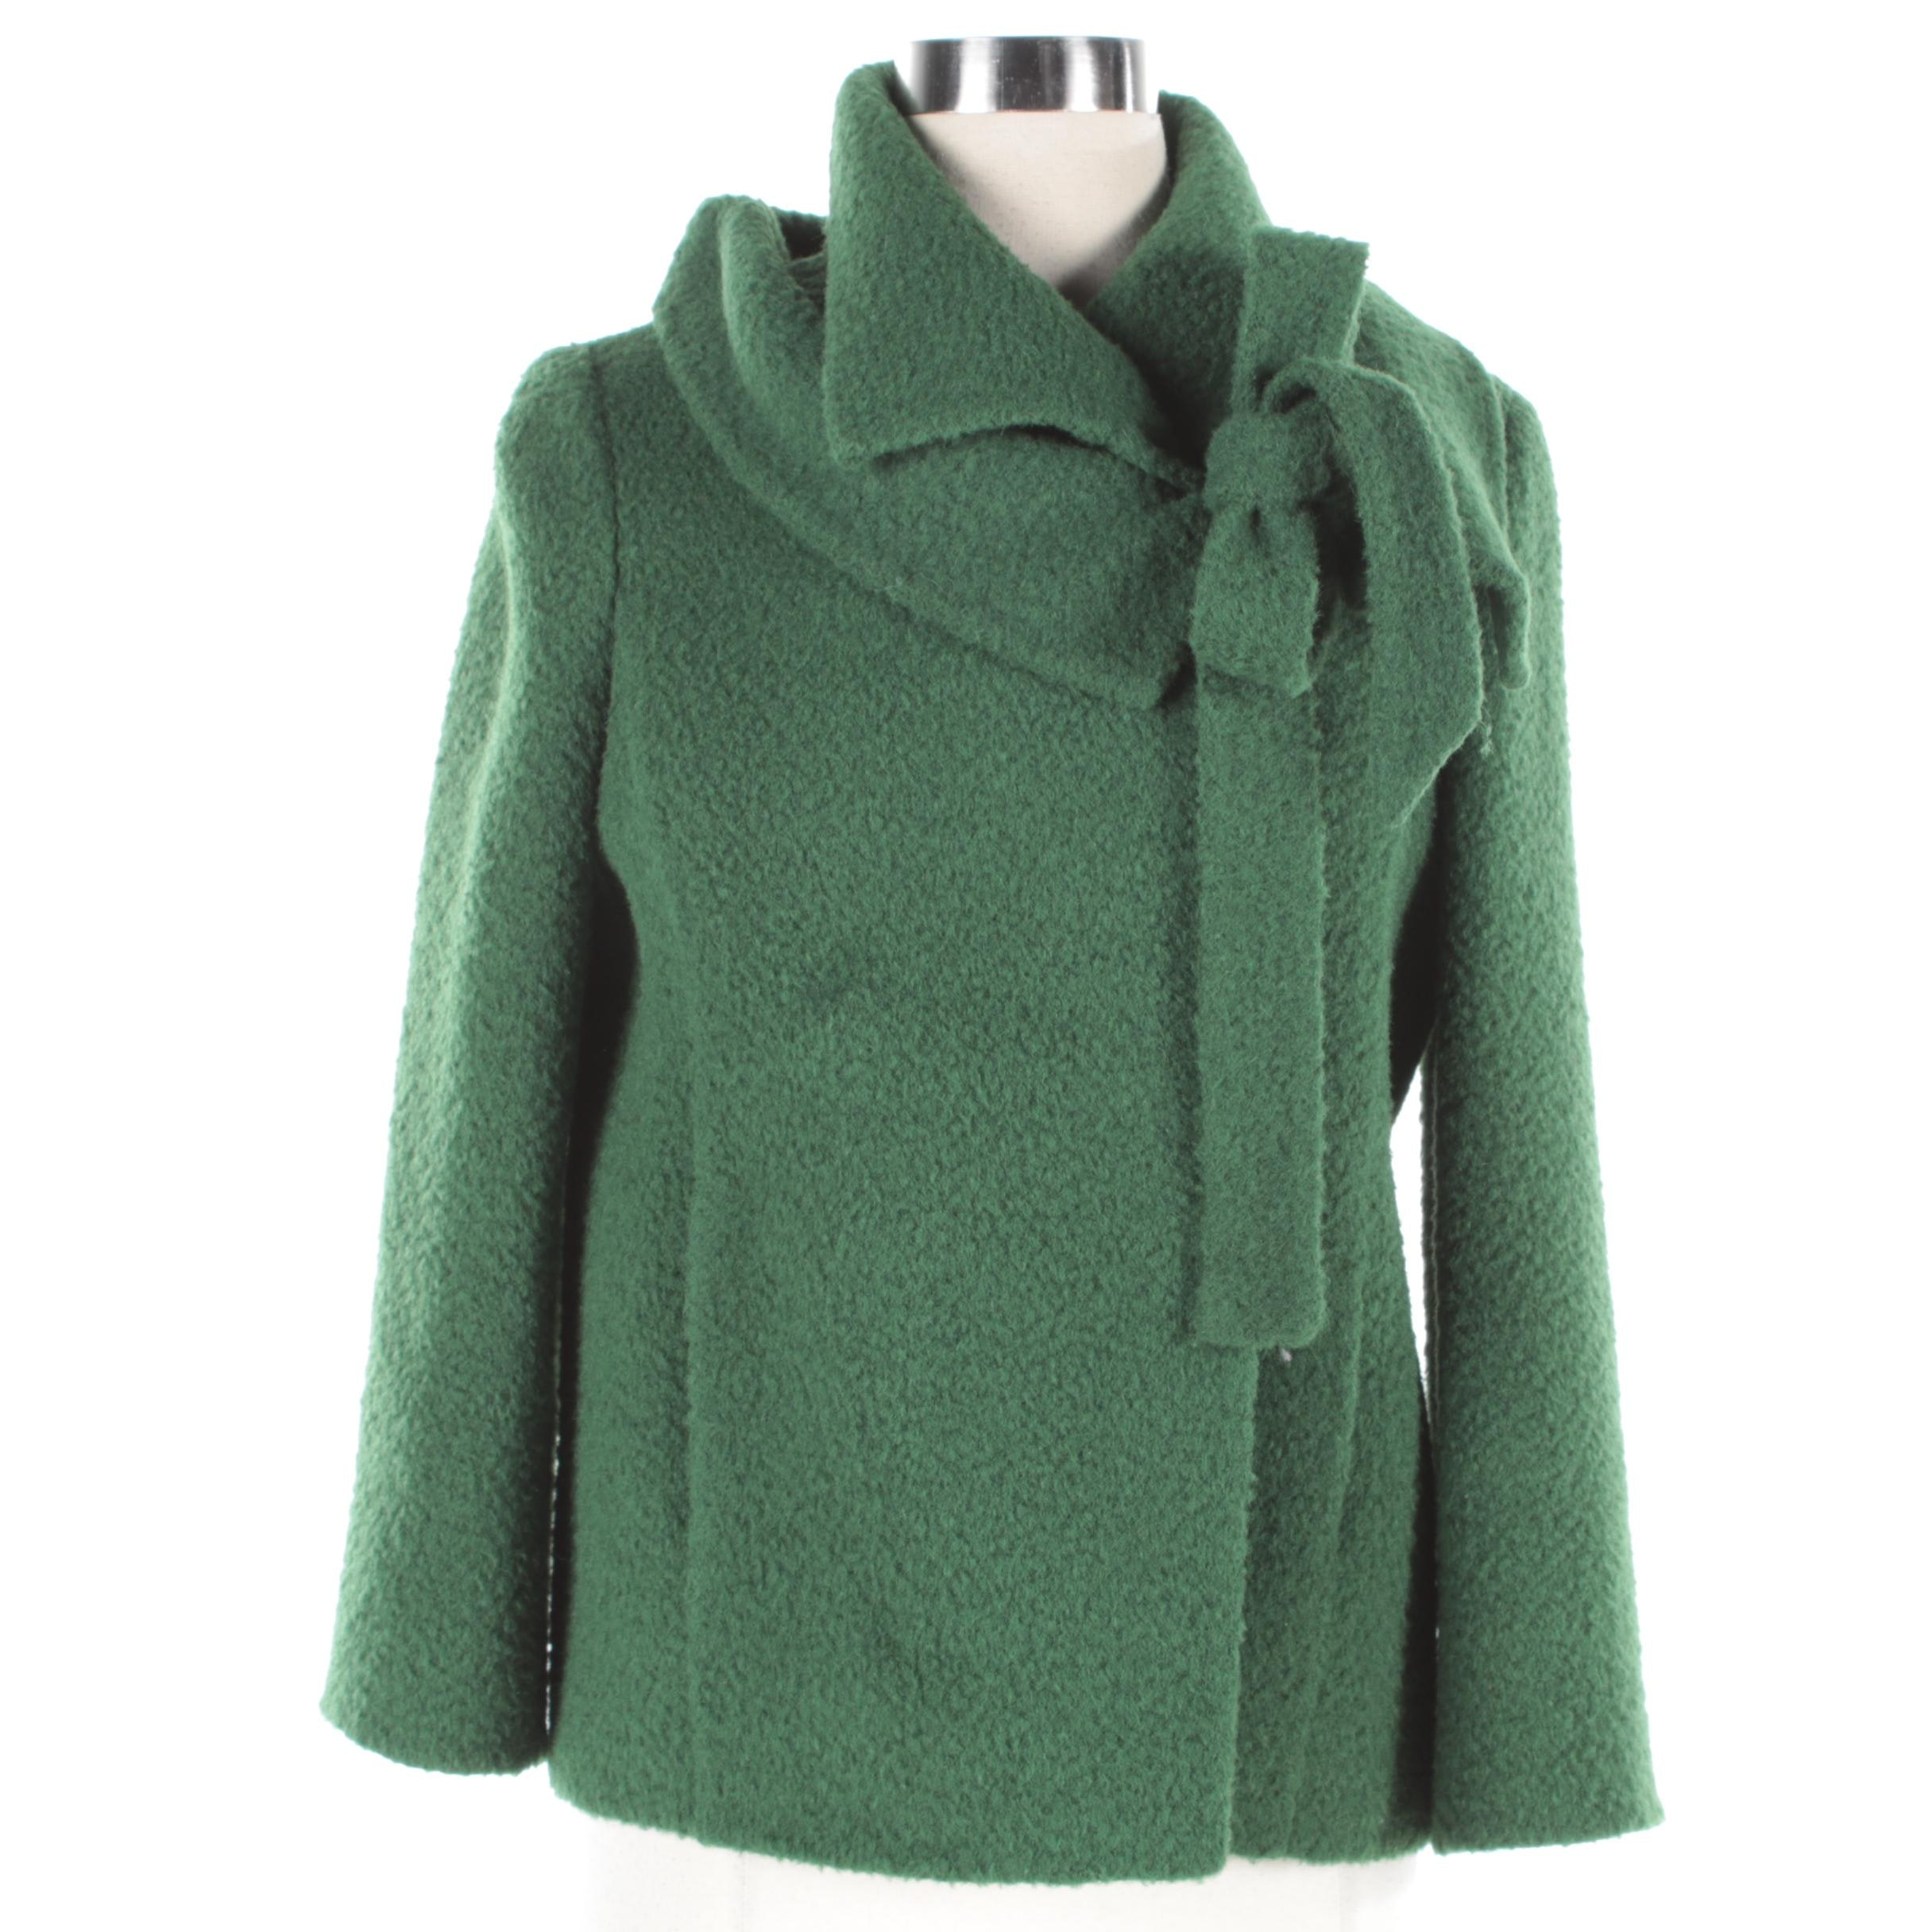 Oscar de la Renta Green Wool Coat